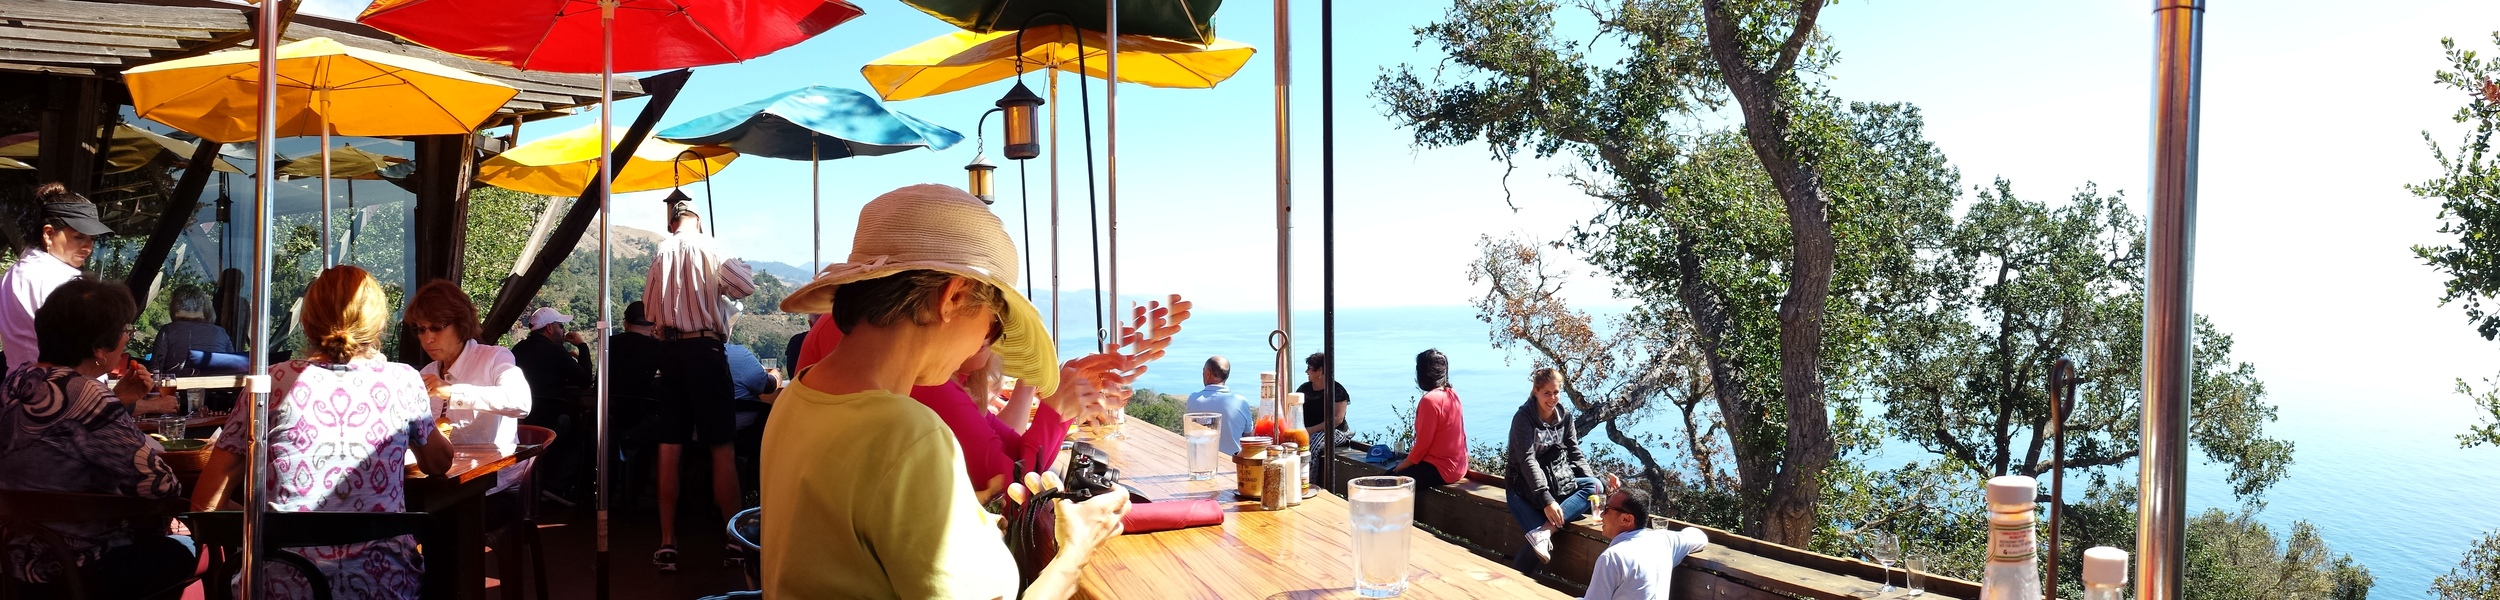 Back deck of Nepenthe Restaurant that overlooks the ocean where I spotted a whale